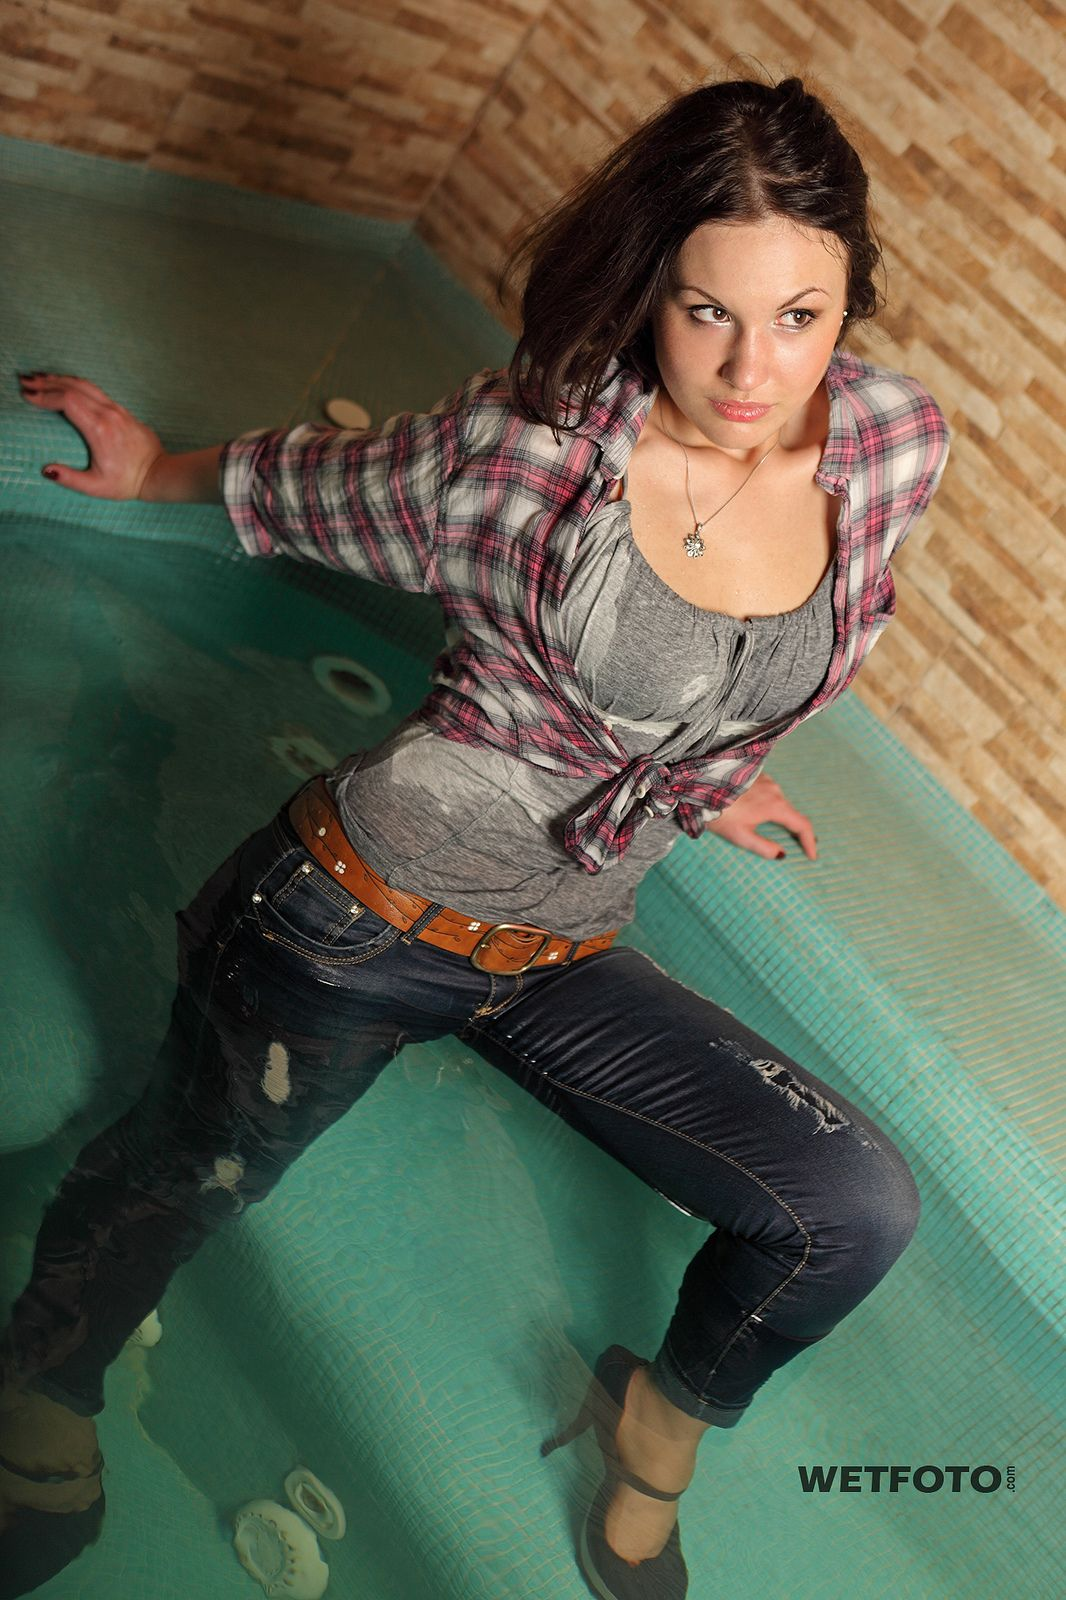 257 wetlook with sexy girl in wet tight jeans. beautiful brunette in